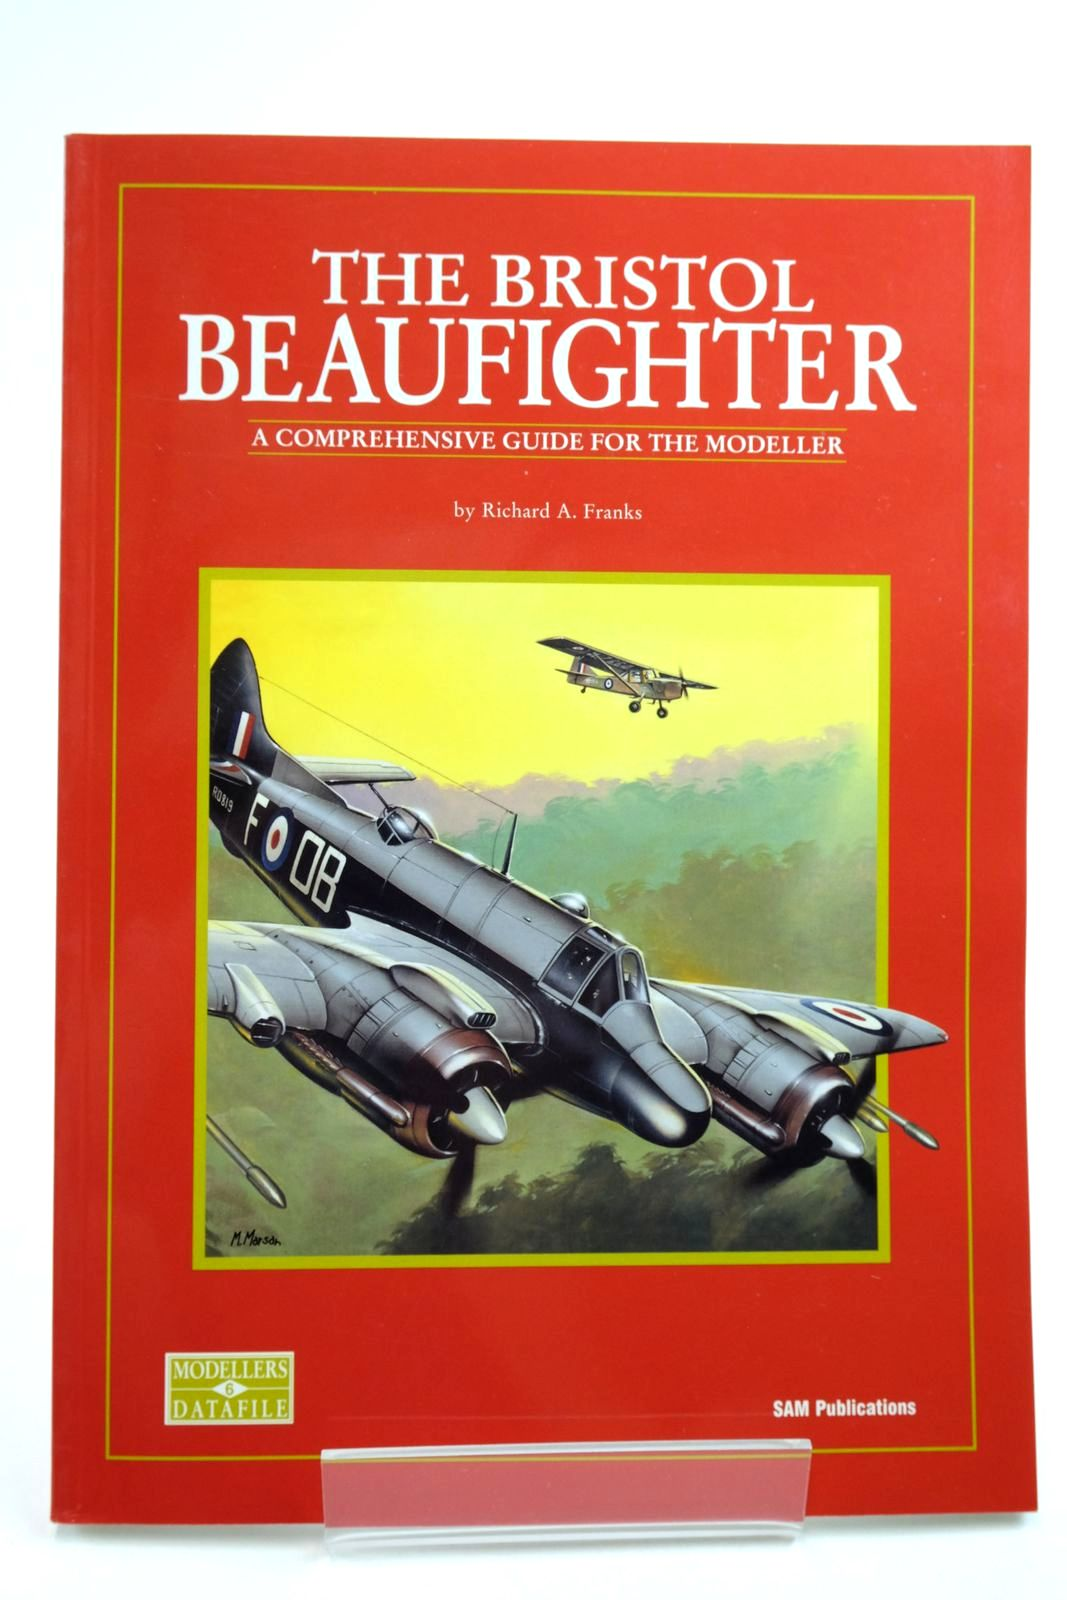 Photo of THE BRISTOL BEAUFIGHTER: A COMPREHENSIVE GUIDE FOR THE MODELLER written by Franks, Richard A. published by Sam Publications (STOCK CODE: 2134489)  for sale by Stella & Rose's Books